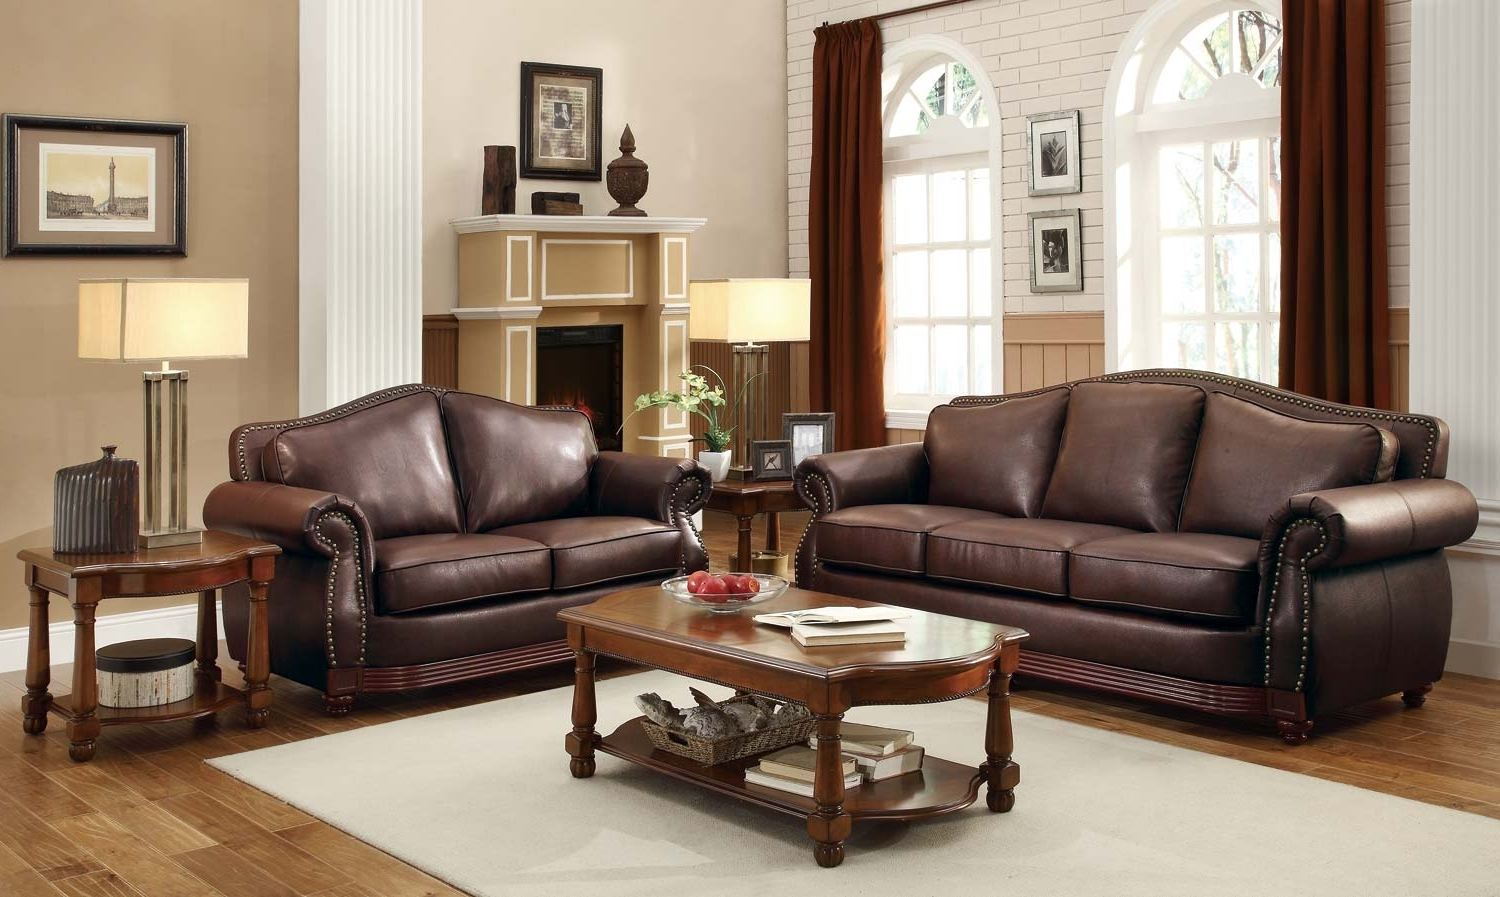 Popular Brown Sofa Chairs Regarding Homelegance Midwood Bonded Leather Sofa Collection – Dark Brown (View 13 of 15)